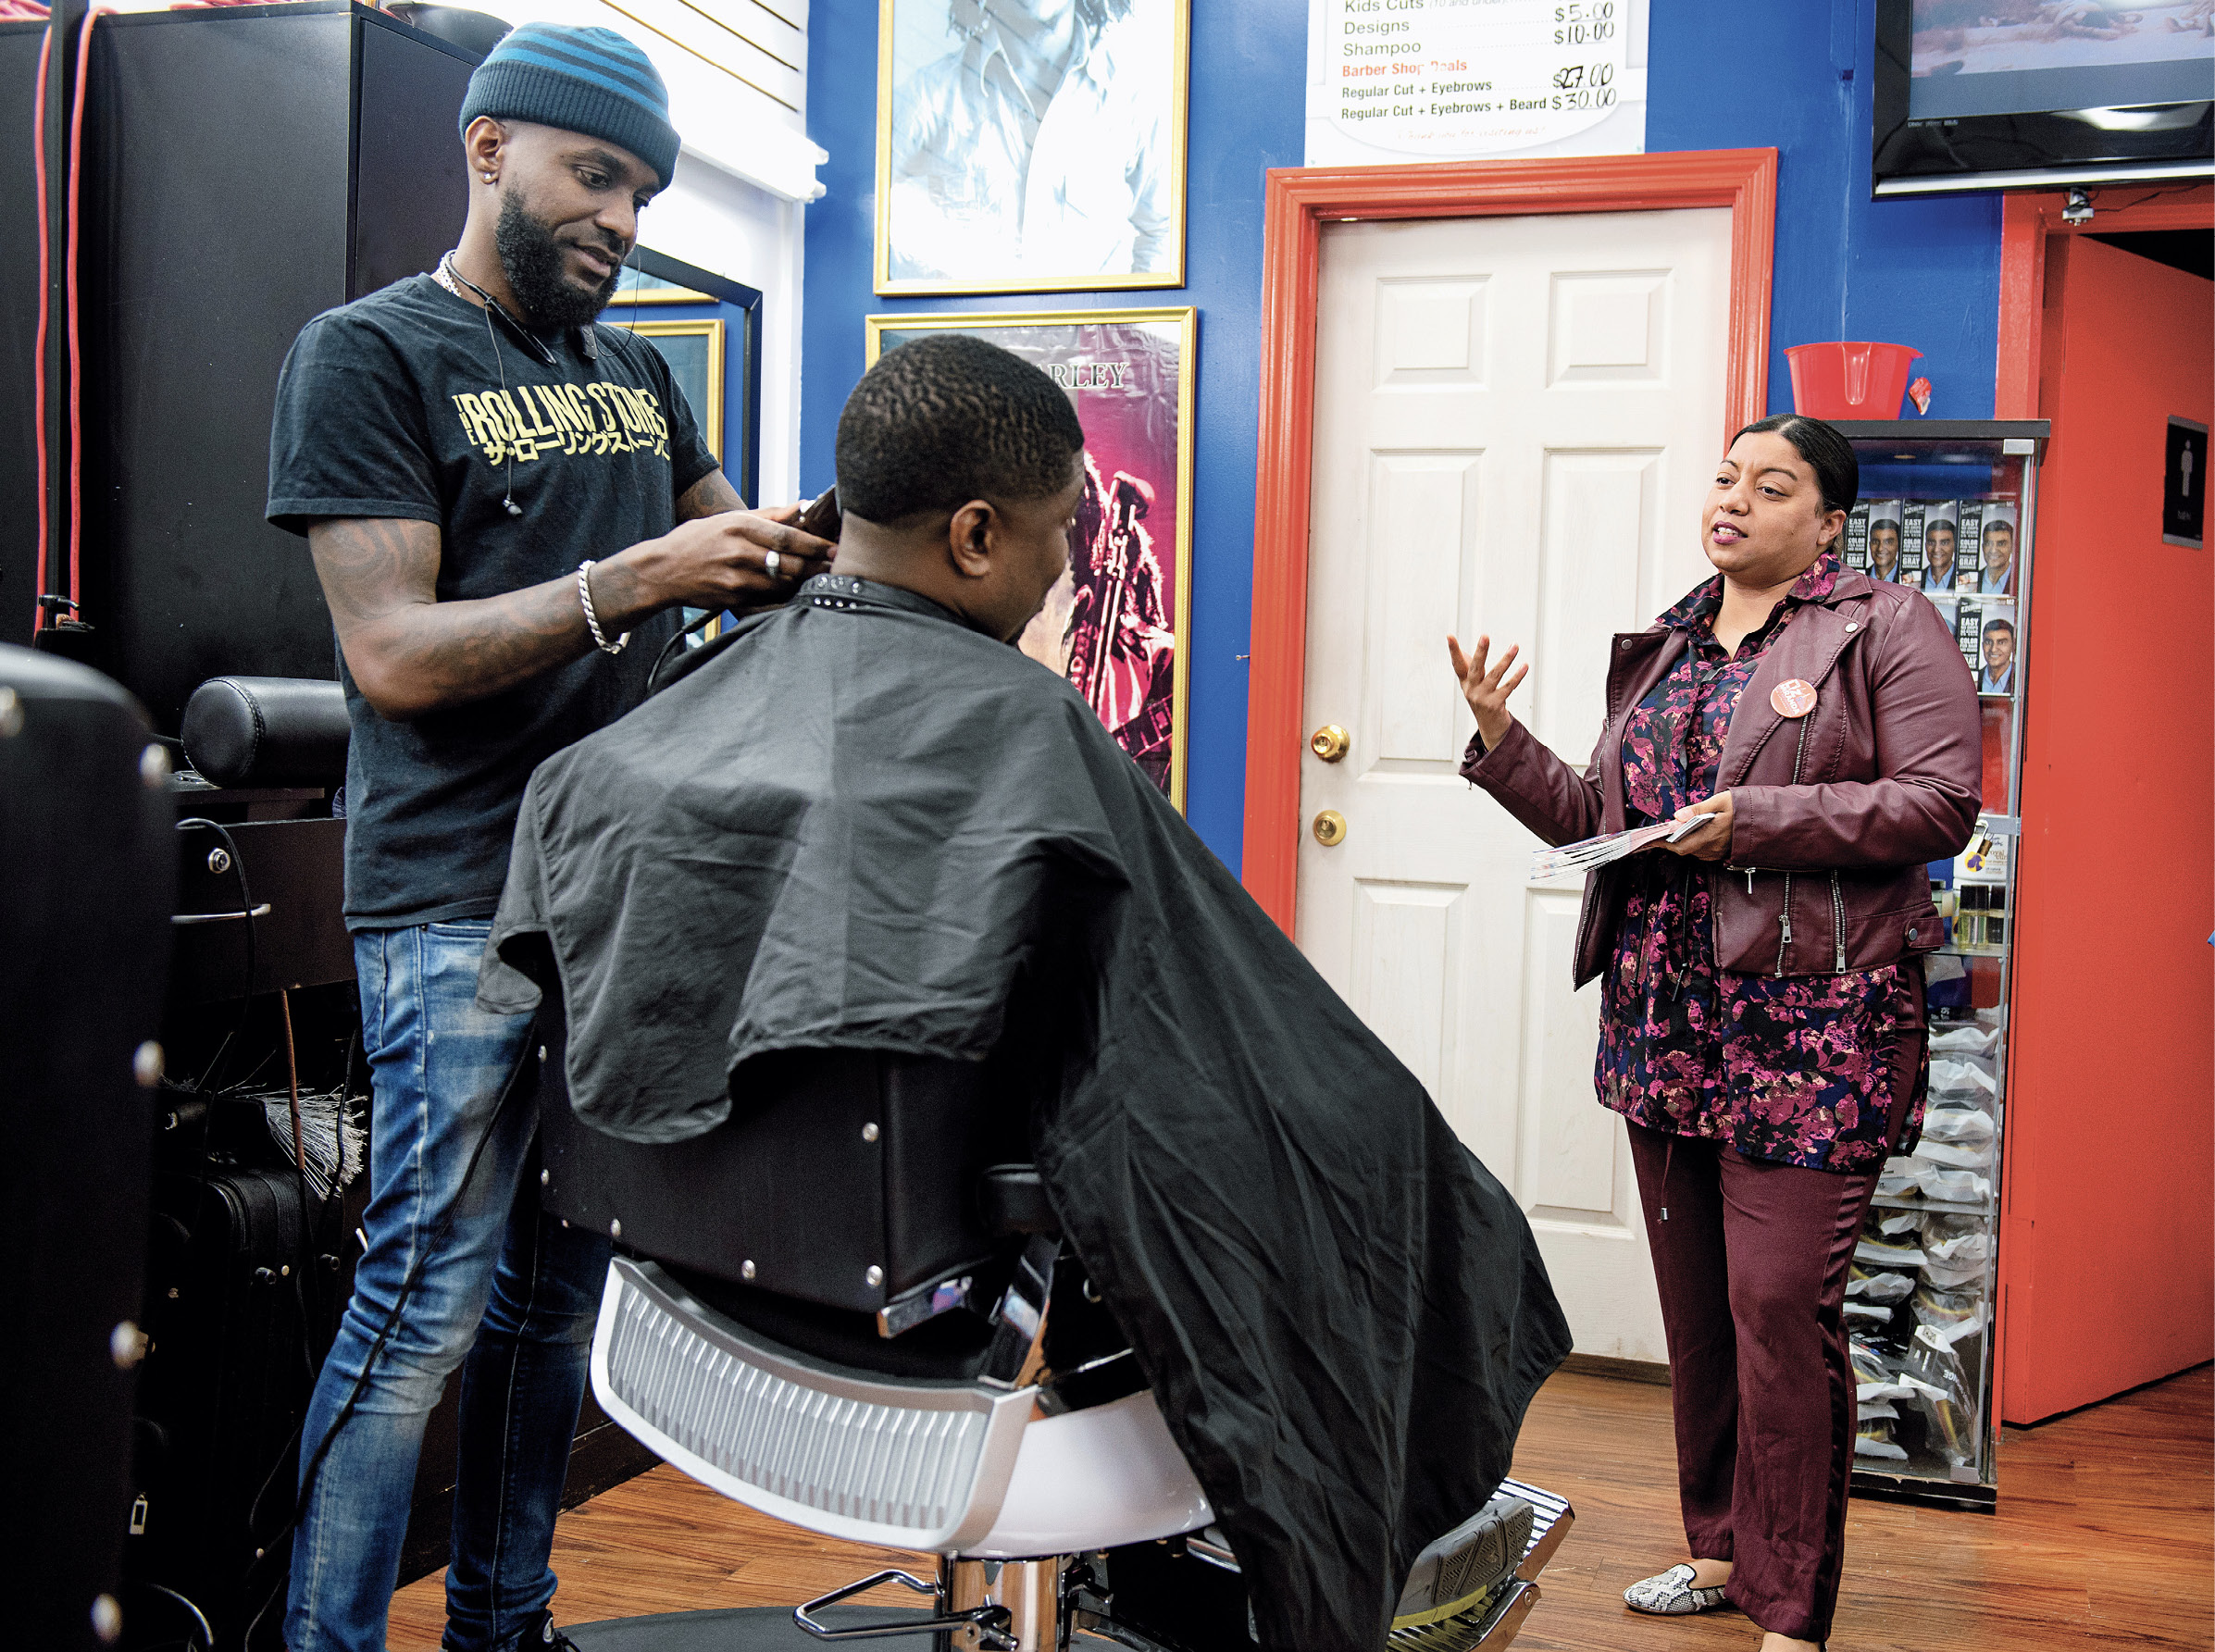 Miranda speaks with constituents in a barber shop